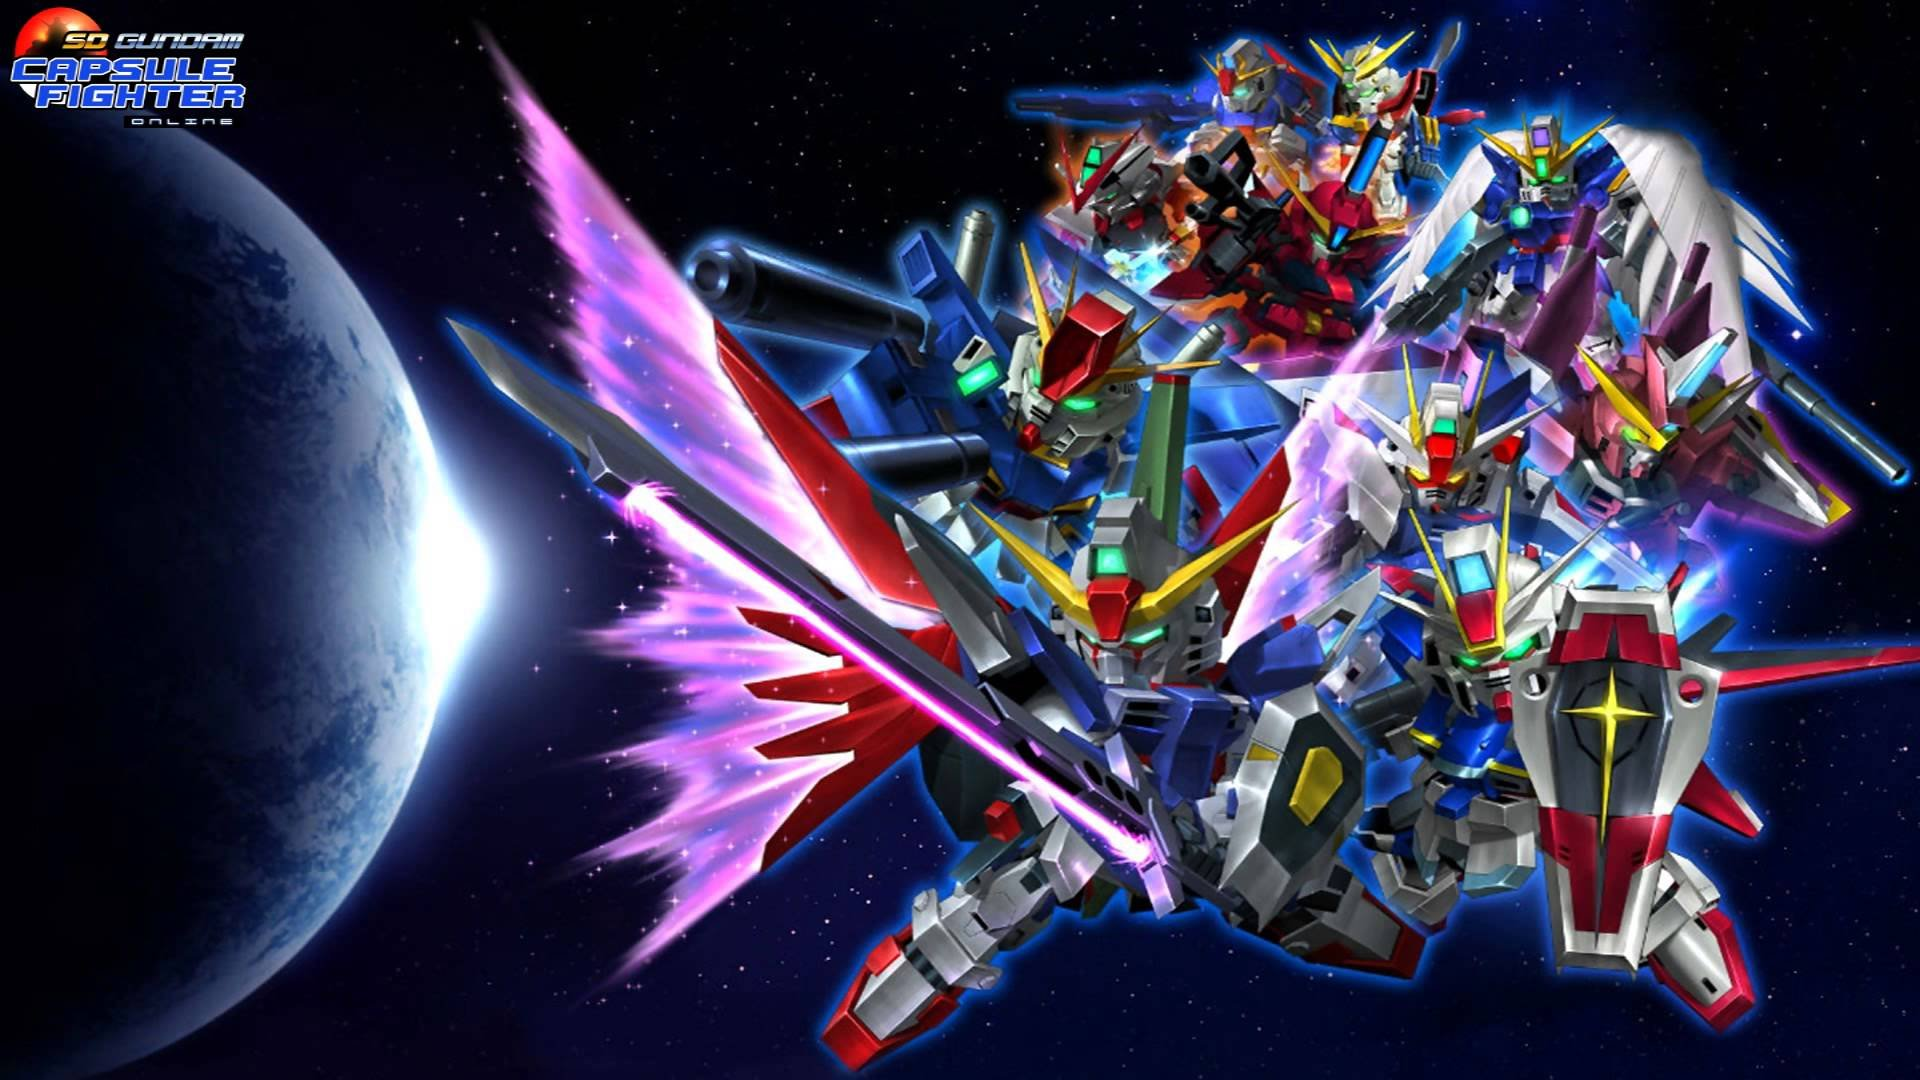 SD Gundam Capsule Fighter Online sci fi shooter tps action 1920x1080